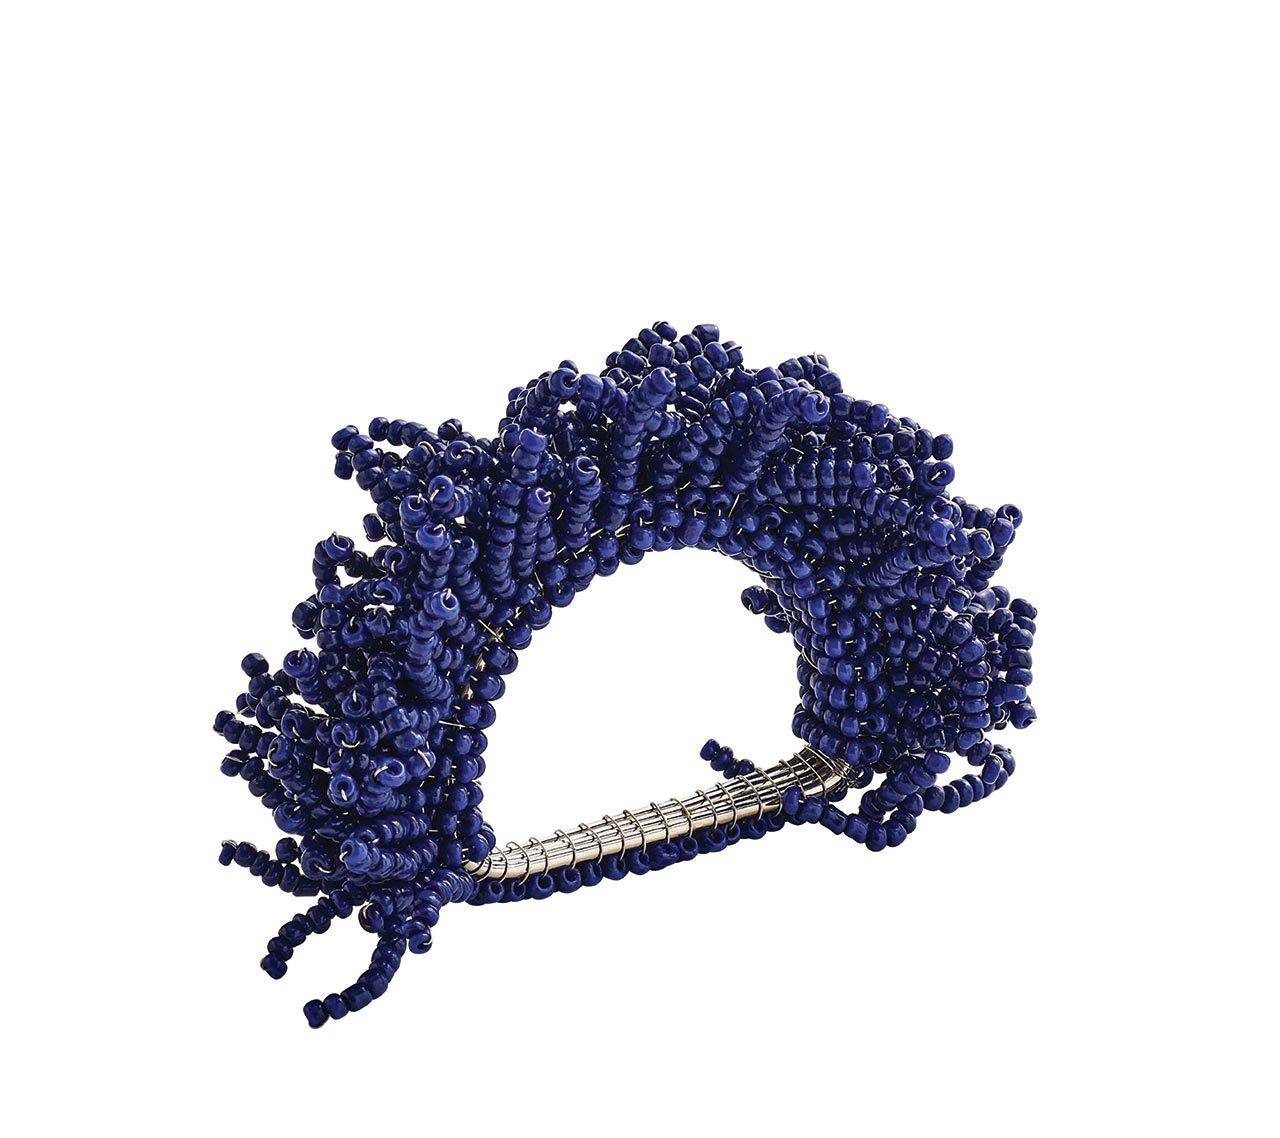 CARNIVAL NAPKIN RING IN NAVY